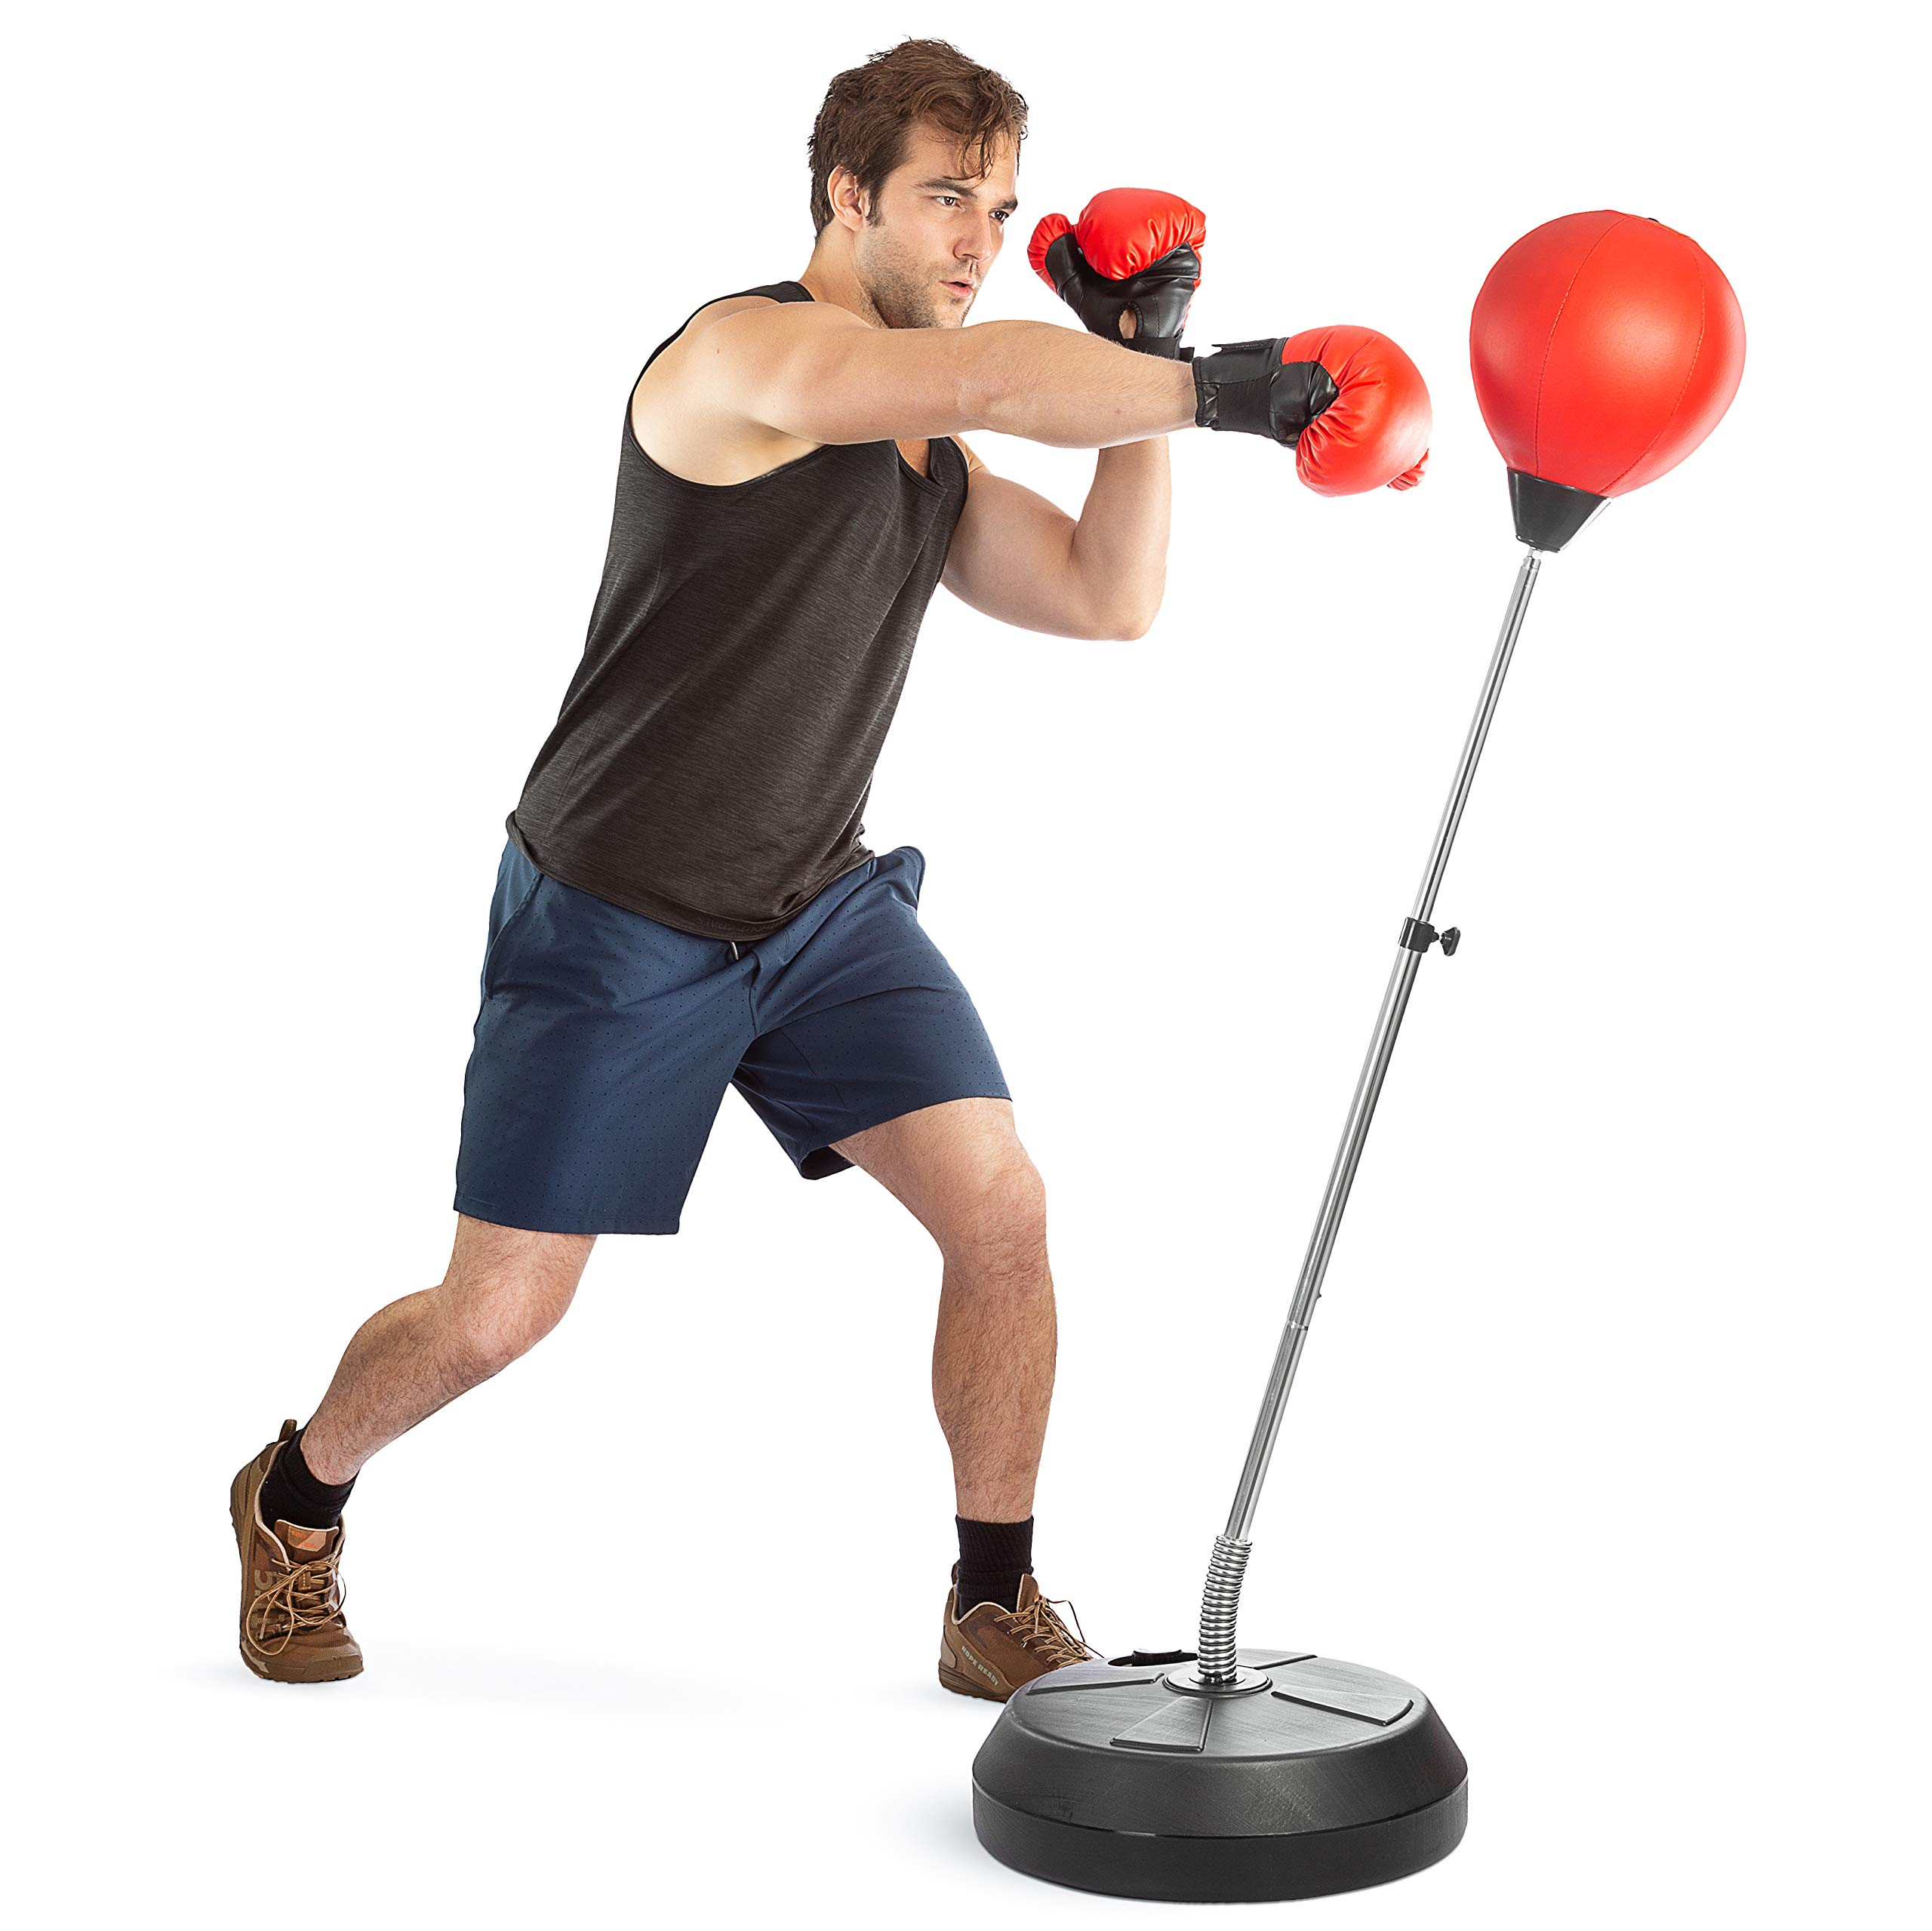 Tech Tools Boxing Ball Set with Punching Ball, Boxing Gloves, Hand Pump & Adjustable Height Stand - Strong Durable Spring Withstands Tough Hits for Stress Relief & Fitness (Adult)